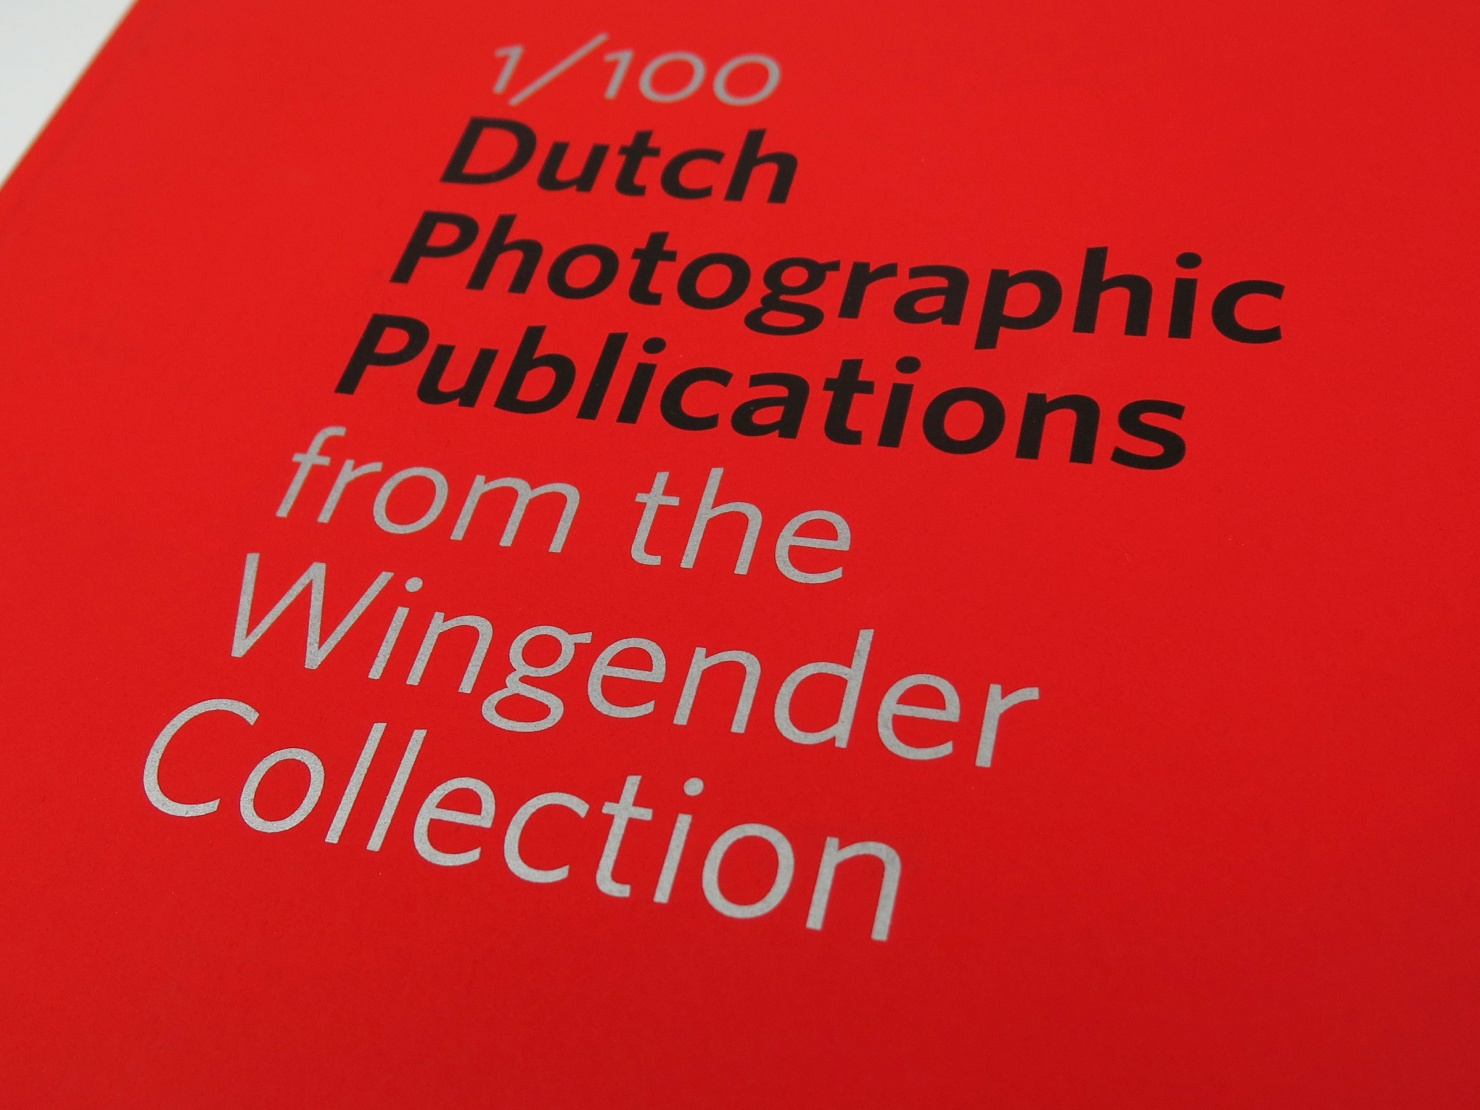 Dutch Photographic Publications from the Wingender Collection